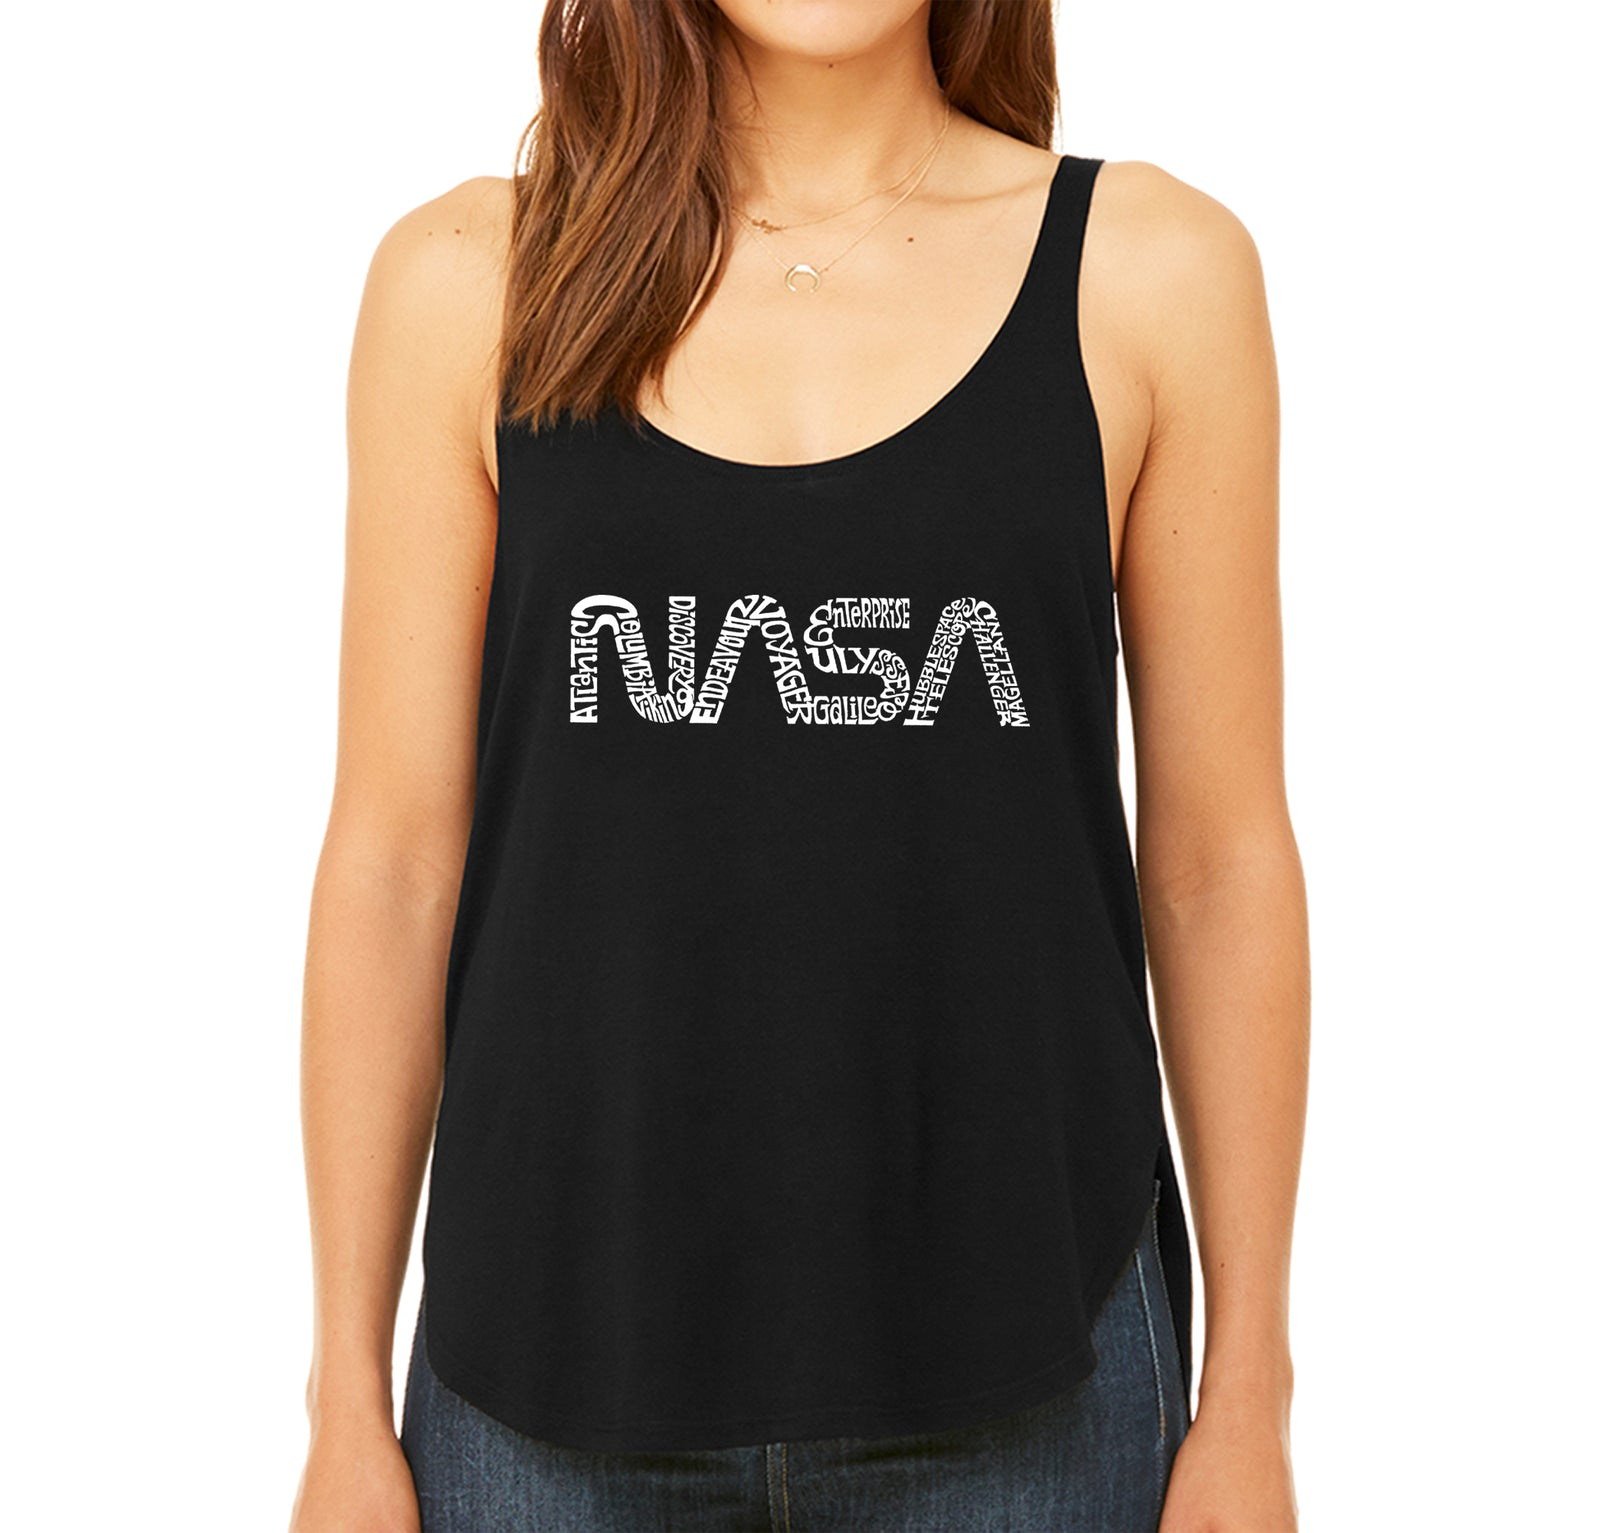 Women's Premium Word Art Flowy Tank Top - Worm Nasa